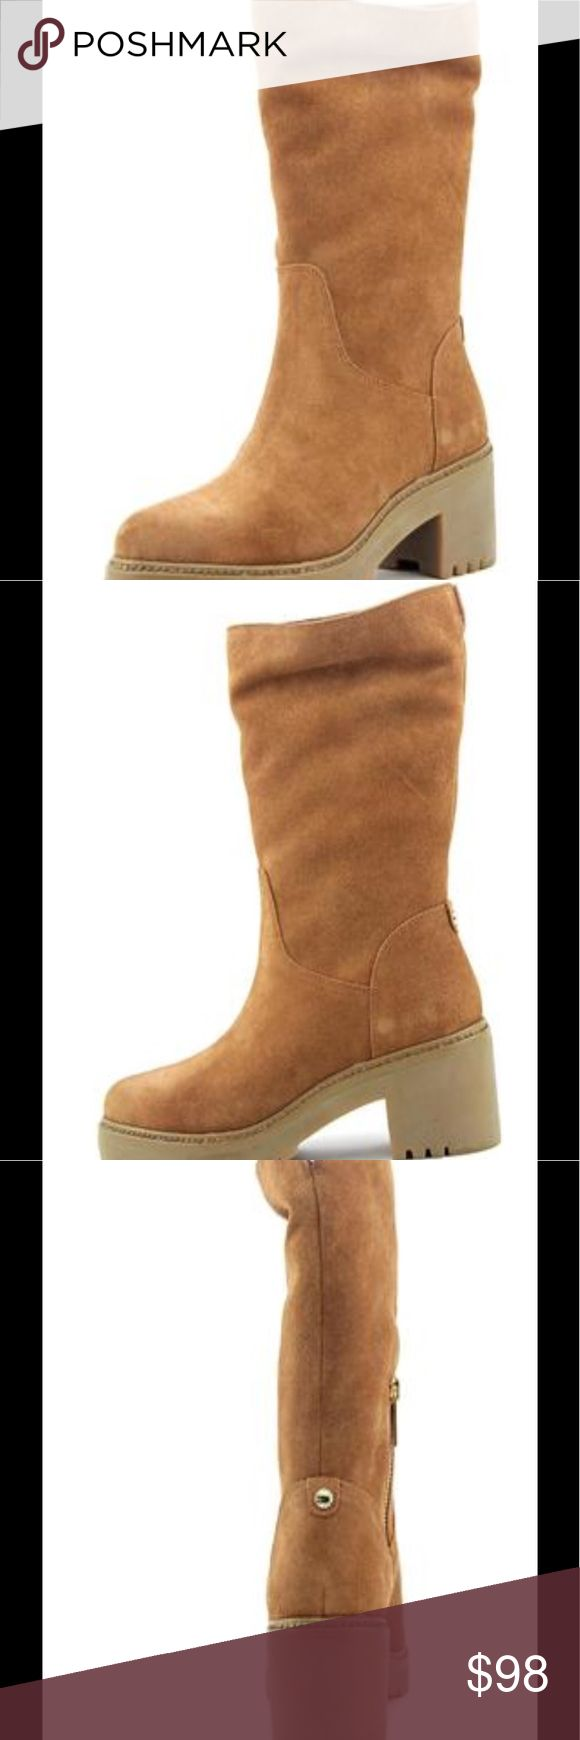 Michael Kors Whitaker Women Mid Calf Boot 👢size 7.5 👢color luggage 👢leather upper 👢rubber outsole 👢pull on boot MICHAEL Michael Kors Shoes Ankle Boots & Booties